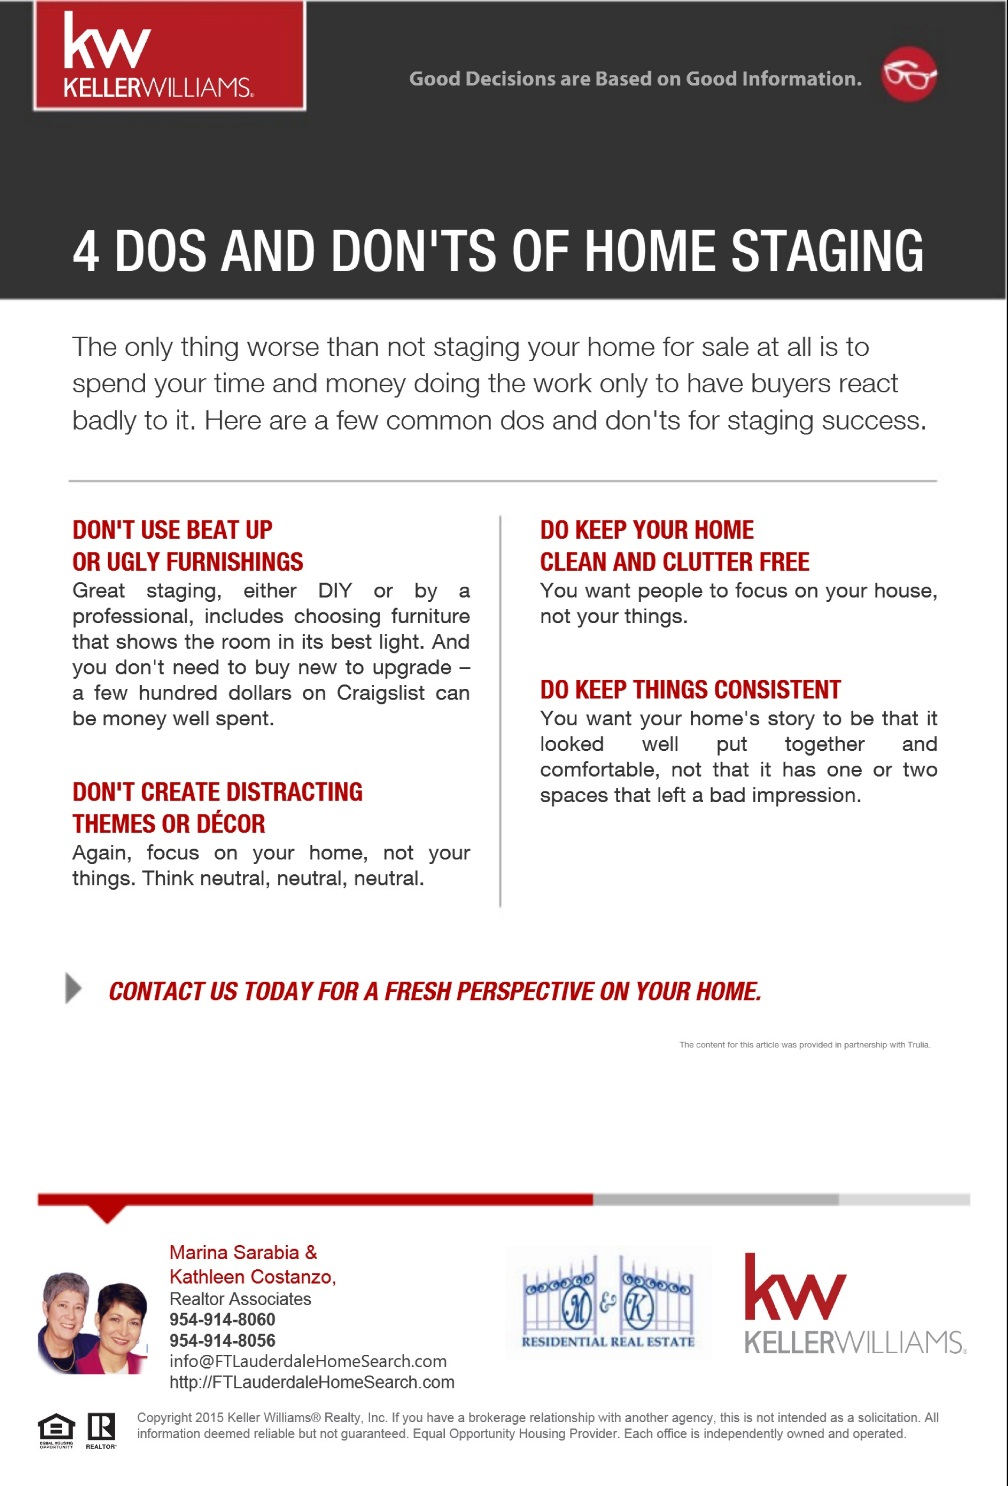 Good Information - Four Dos and Don'ts of Home Staging [Team]a